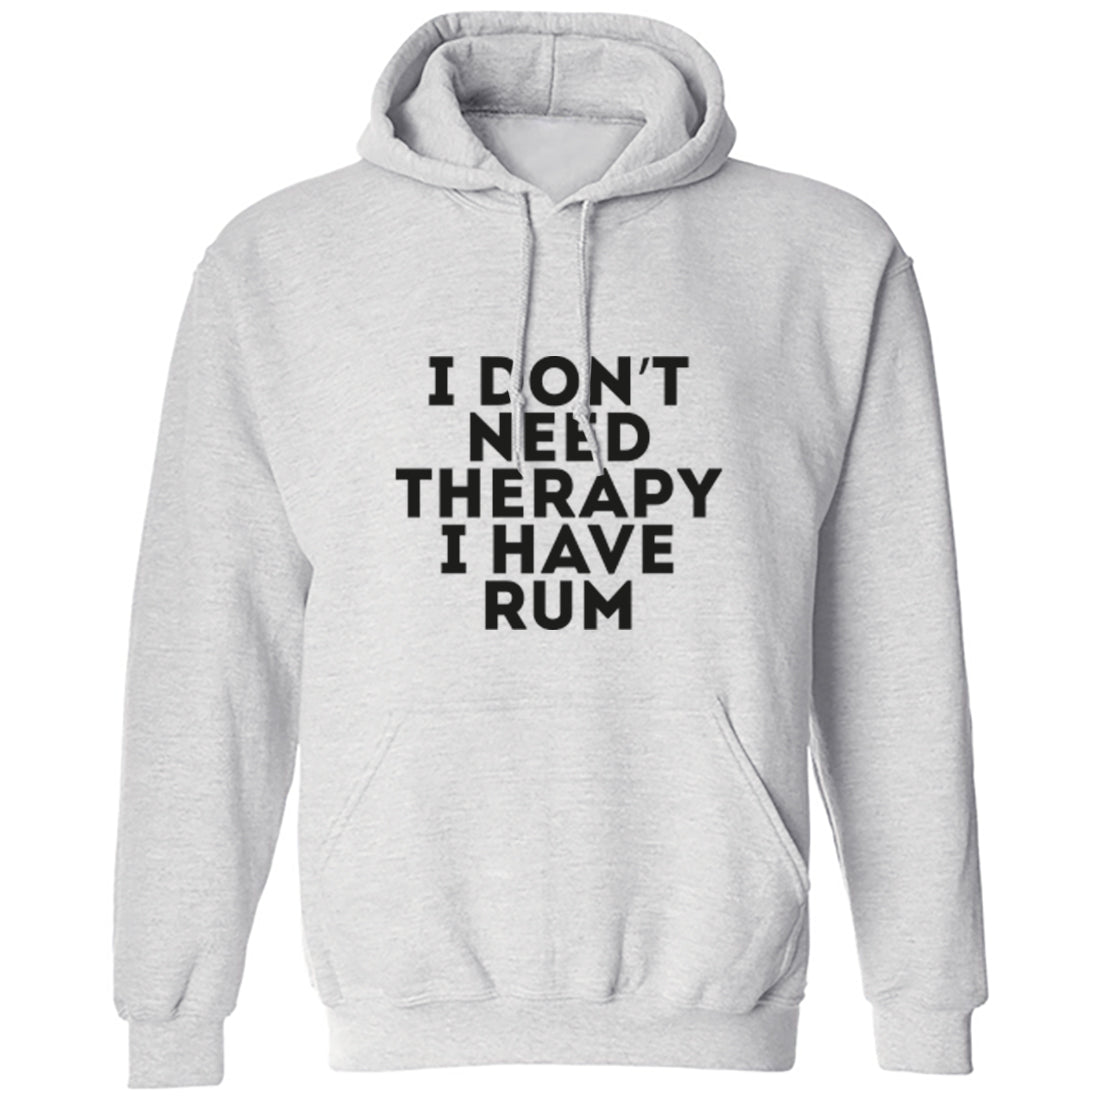 I Don't Need Therapy I Have Rum Unisex Hoodie K1622 - Illustrated Identity Ltd.